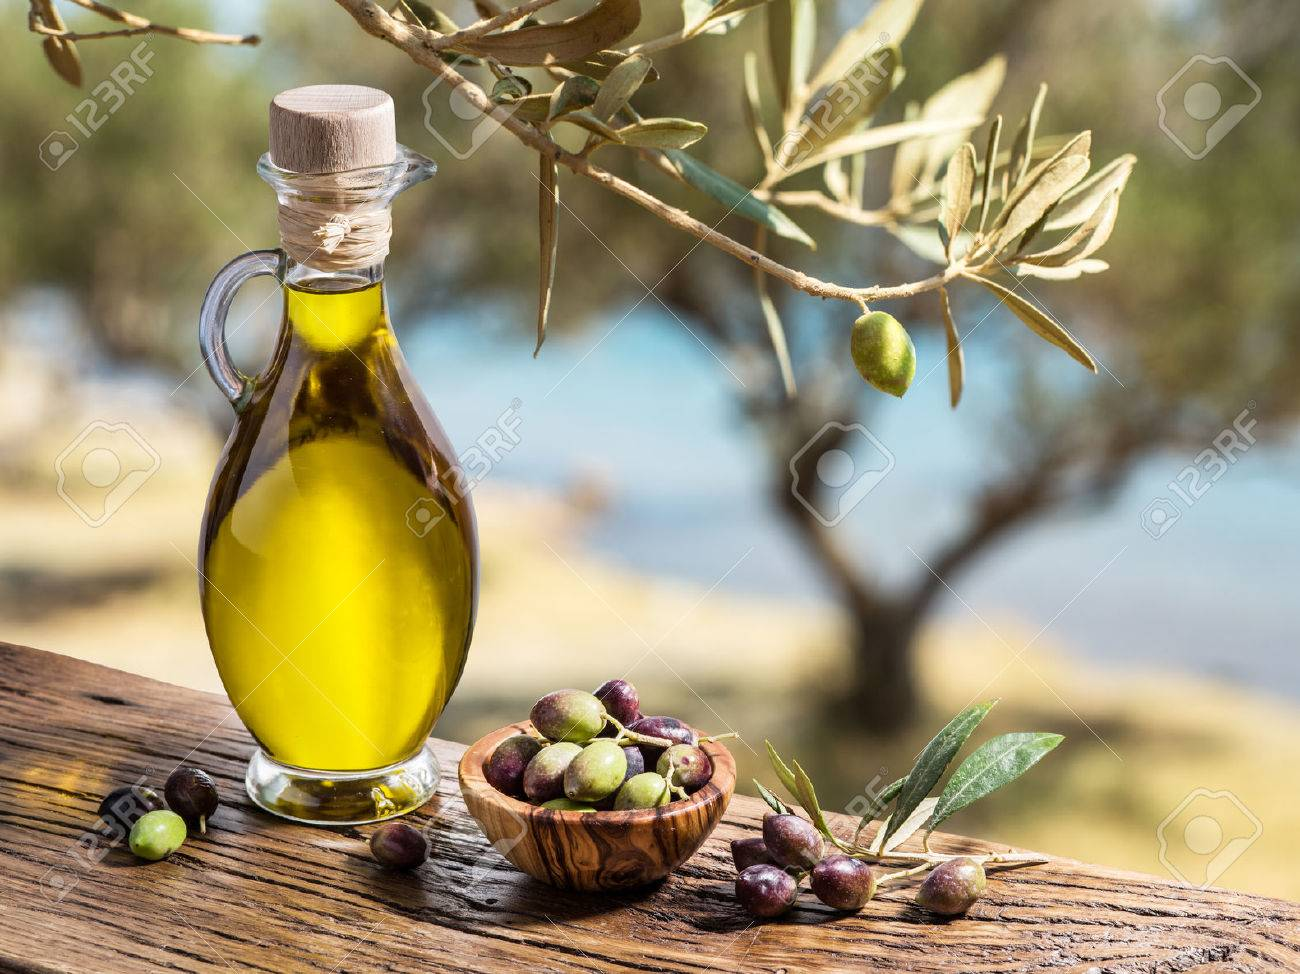 Olive oil and berries are on the wooden table under the olive tree. Standard-Bild - 49883726